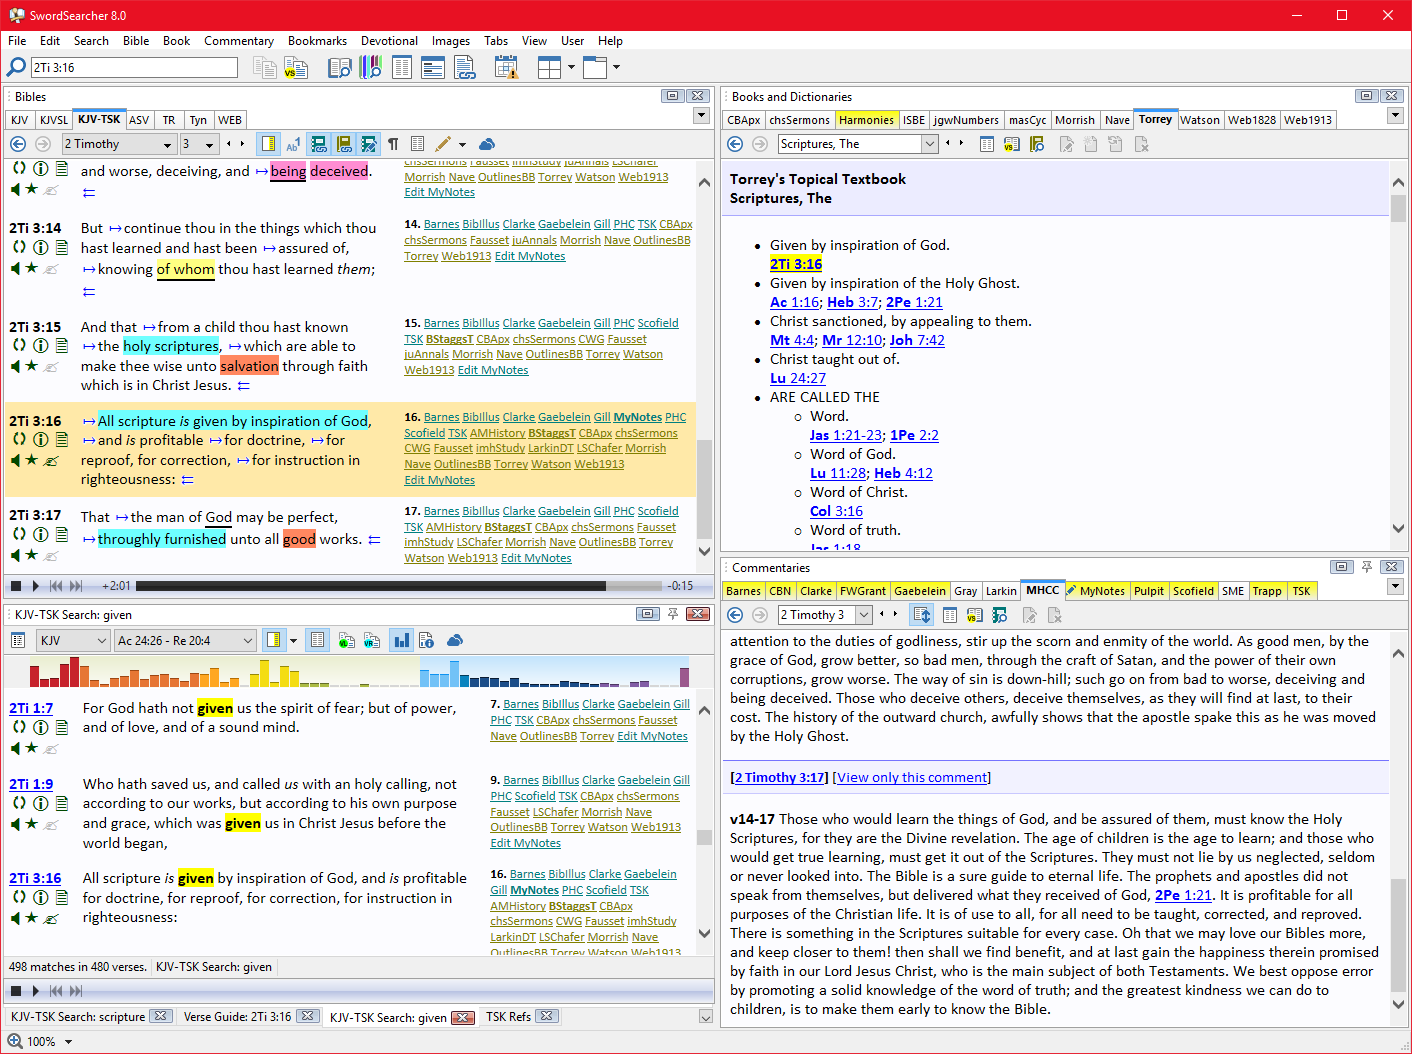 SwordSearcher Bible Software 6.2.1 full